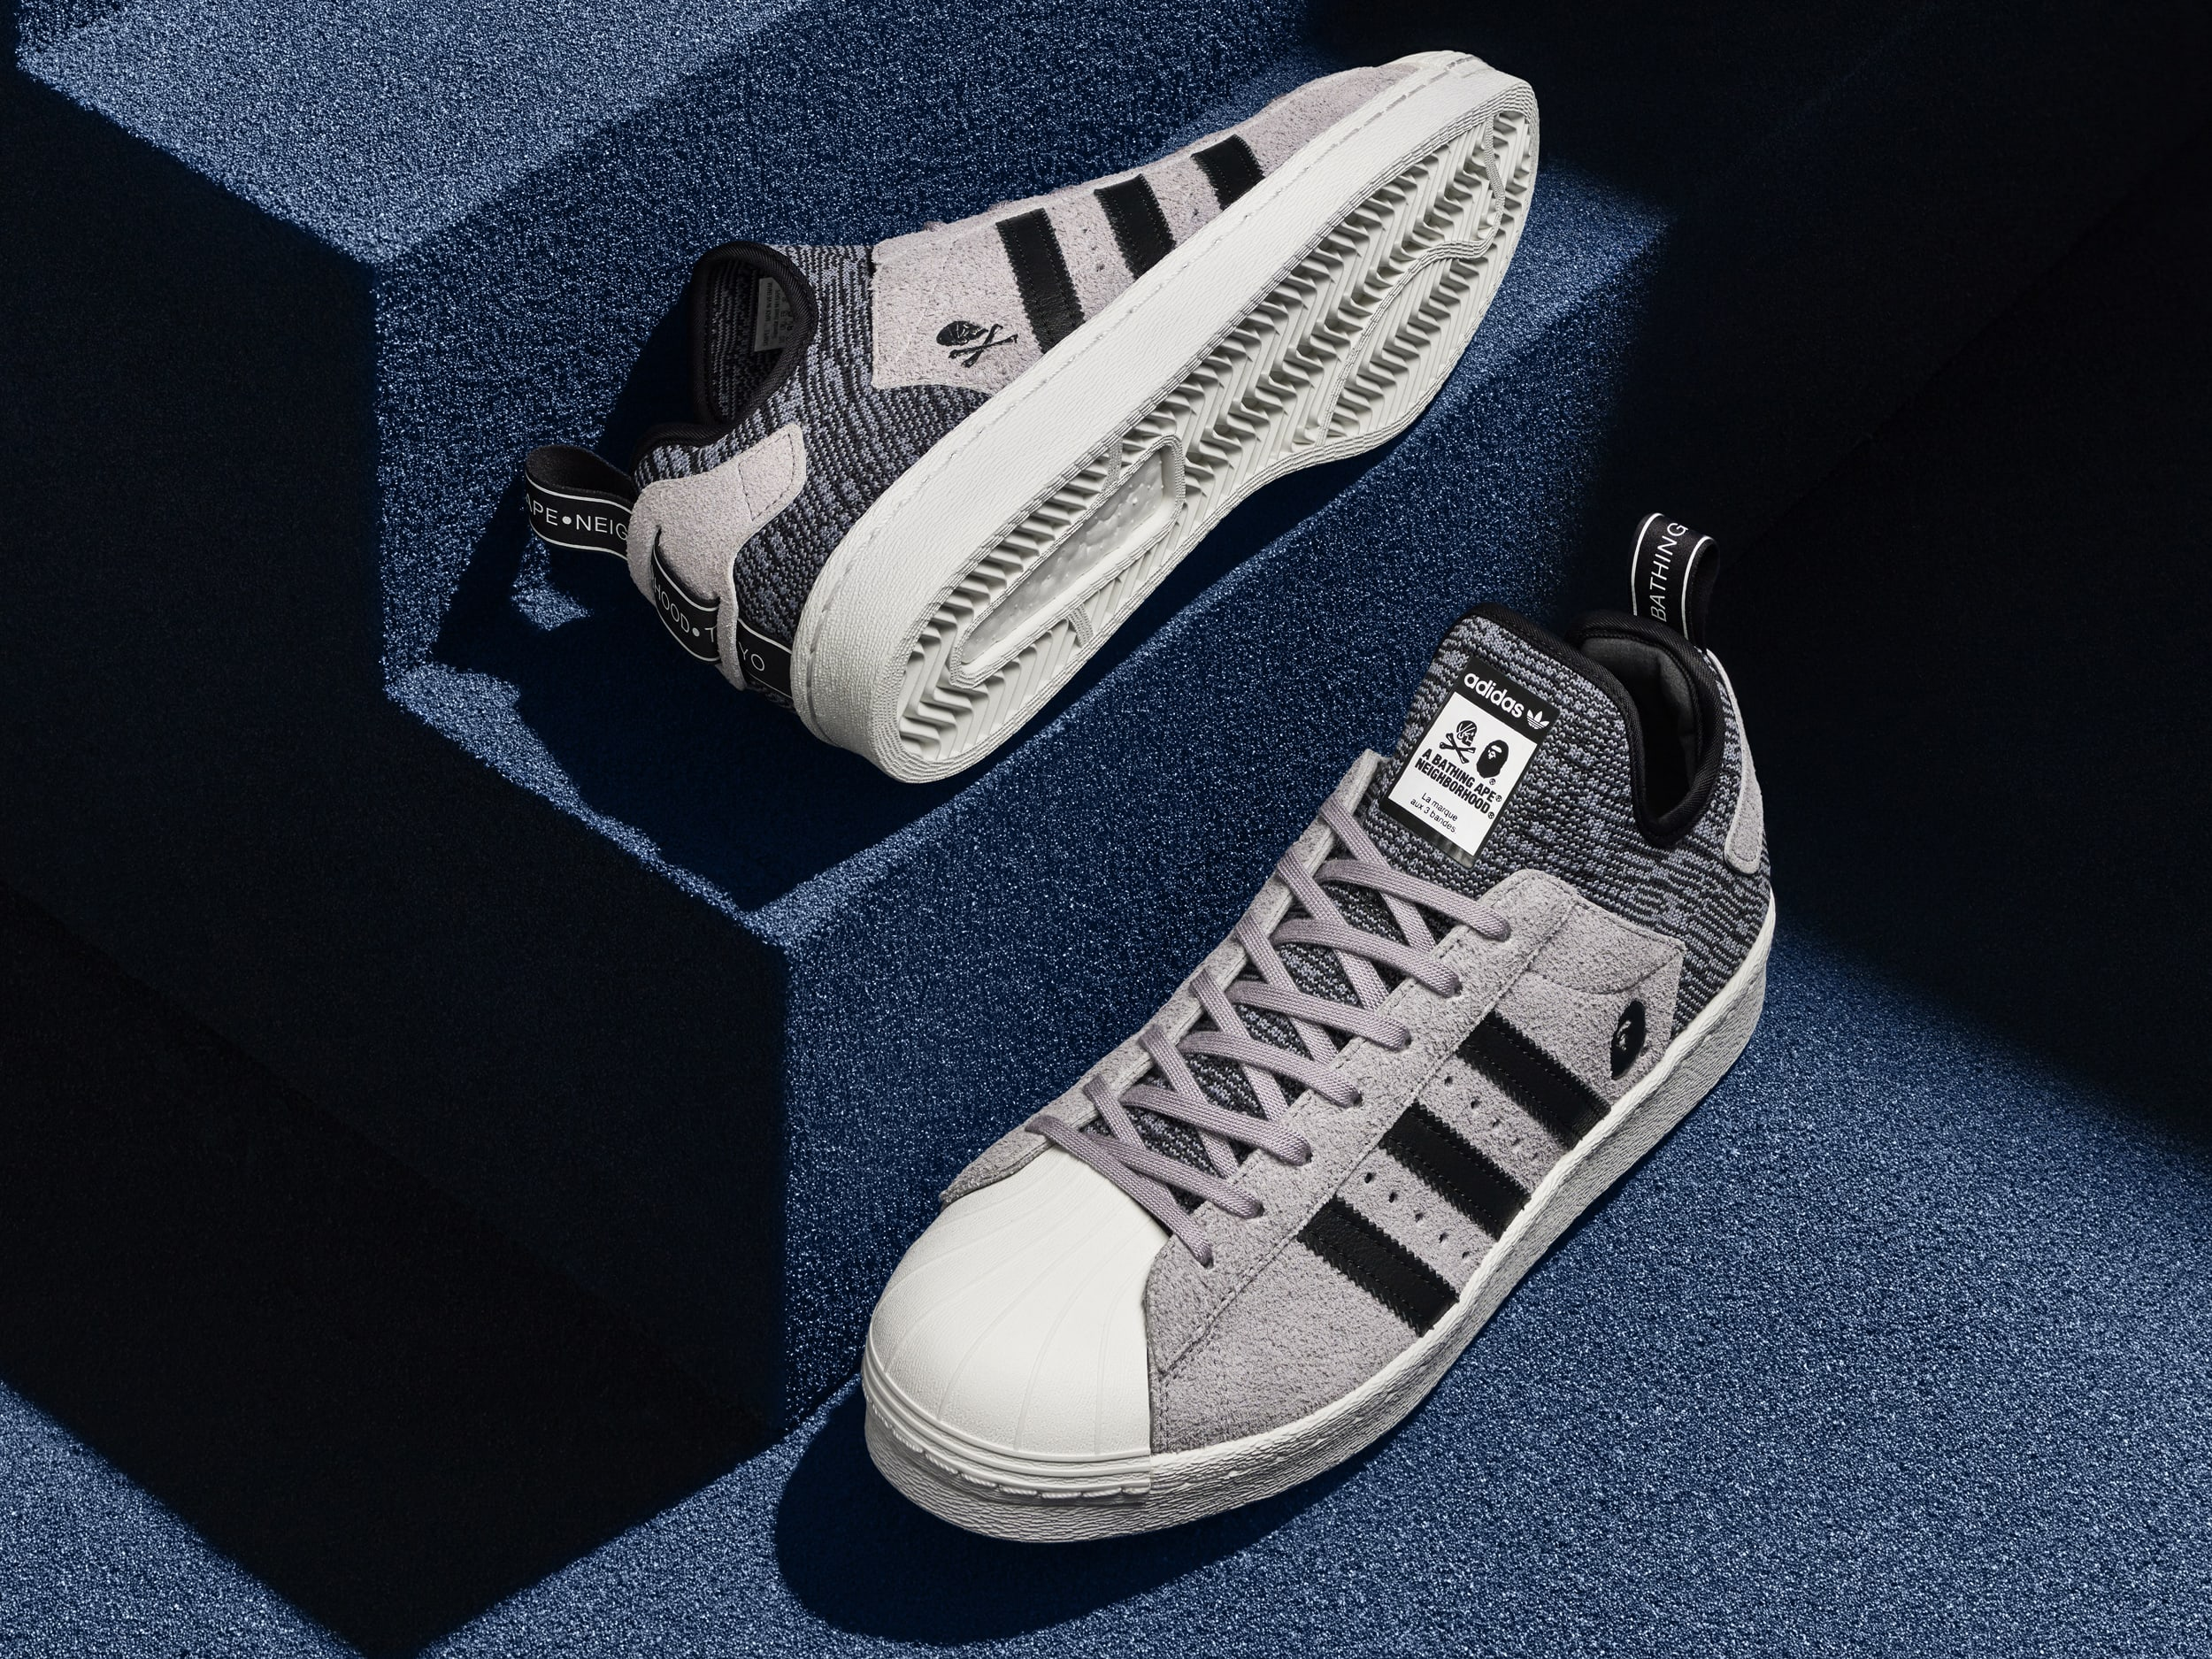 Best 25 Adidas Superstar Kaufen ideas on Pinterest Superstar